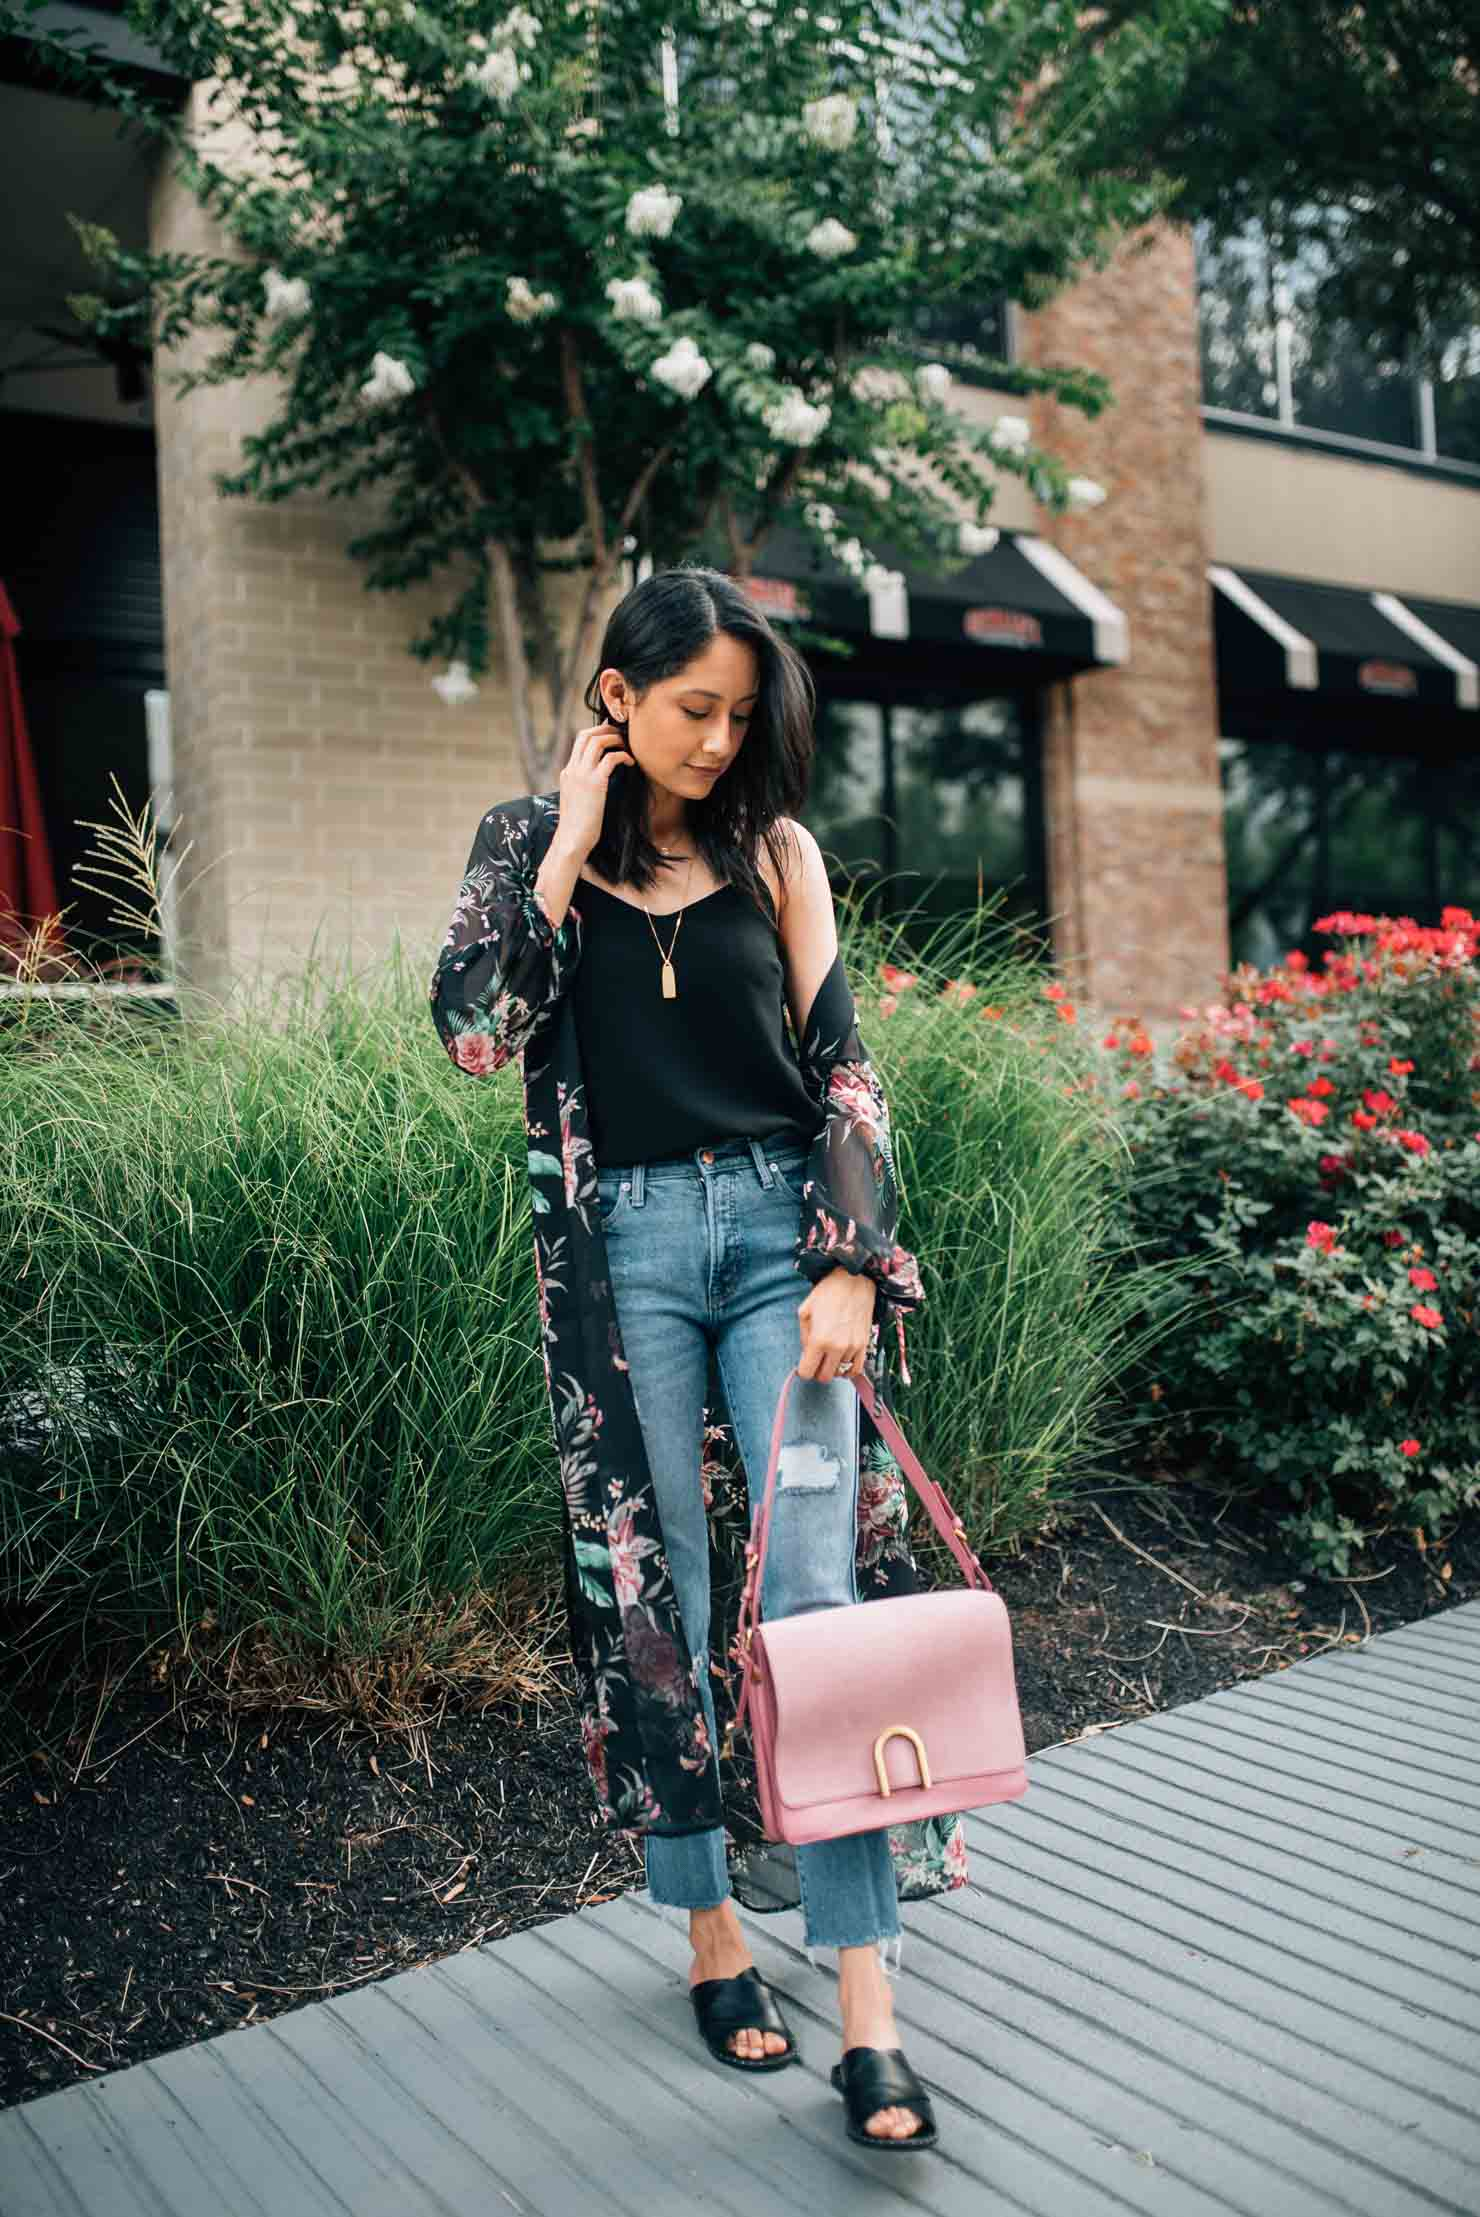 Lilly Beltran wearing floral kimono, pink Fossil bag and Madewell layered necklace for a chic Summer look